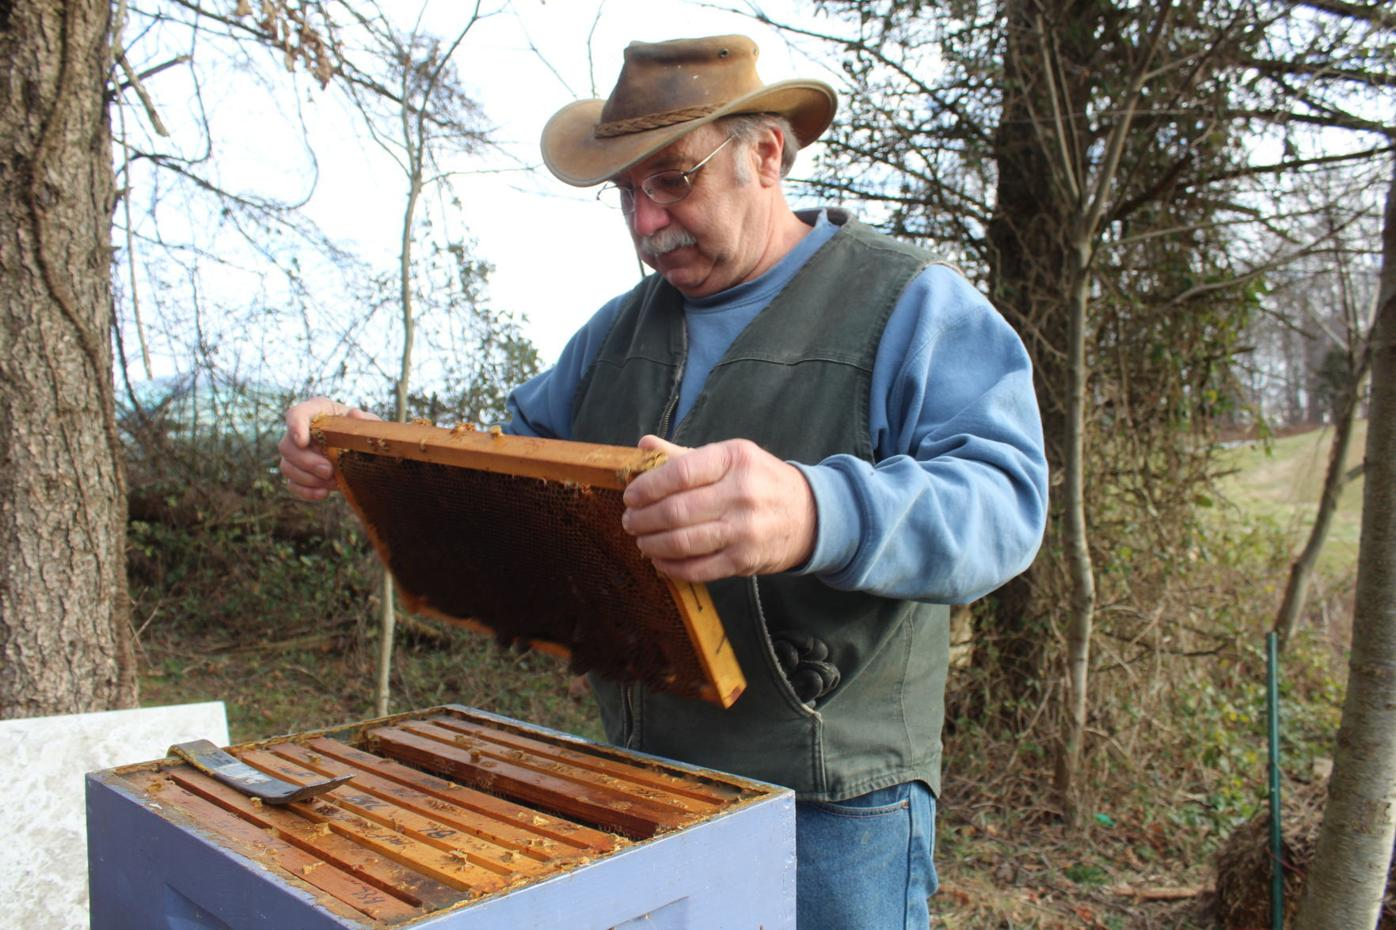 Susquehanna Beekeepers offer grant for young beekeepers to get started